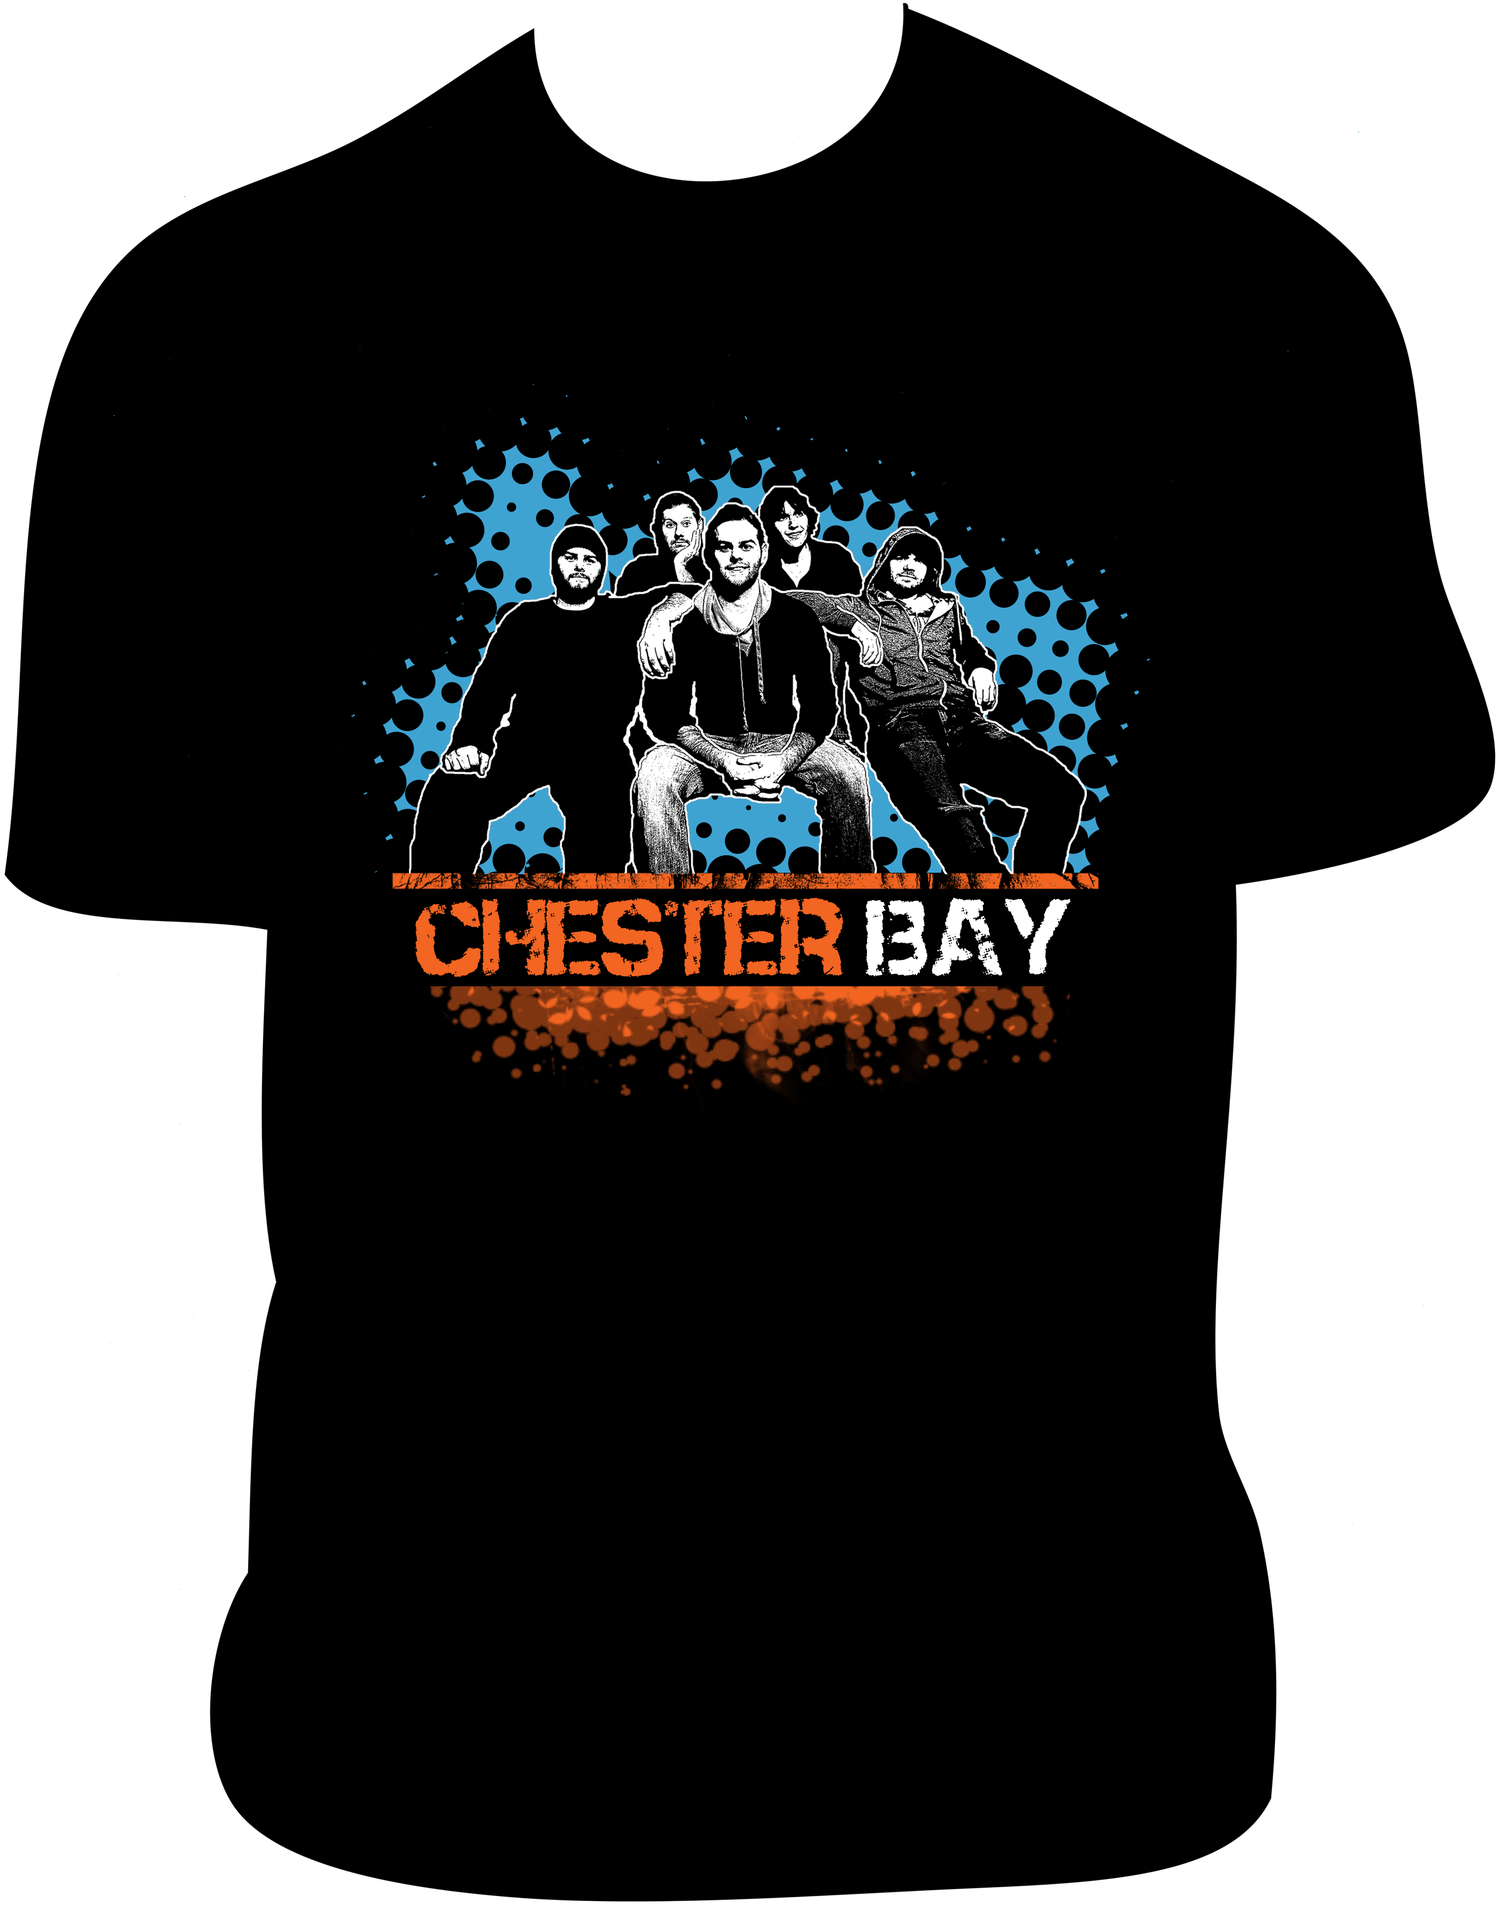 Image of Chester Bay Full Band T-Shirt BLACK